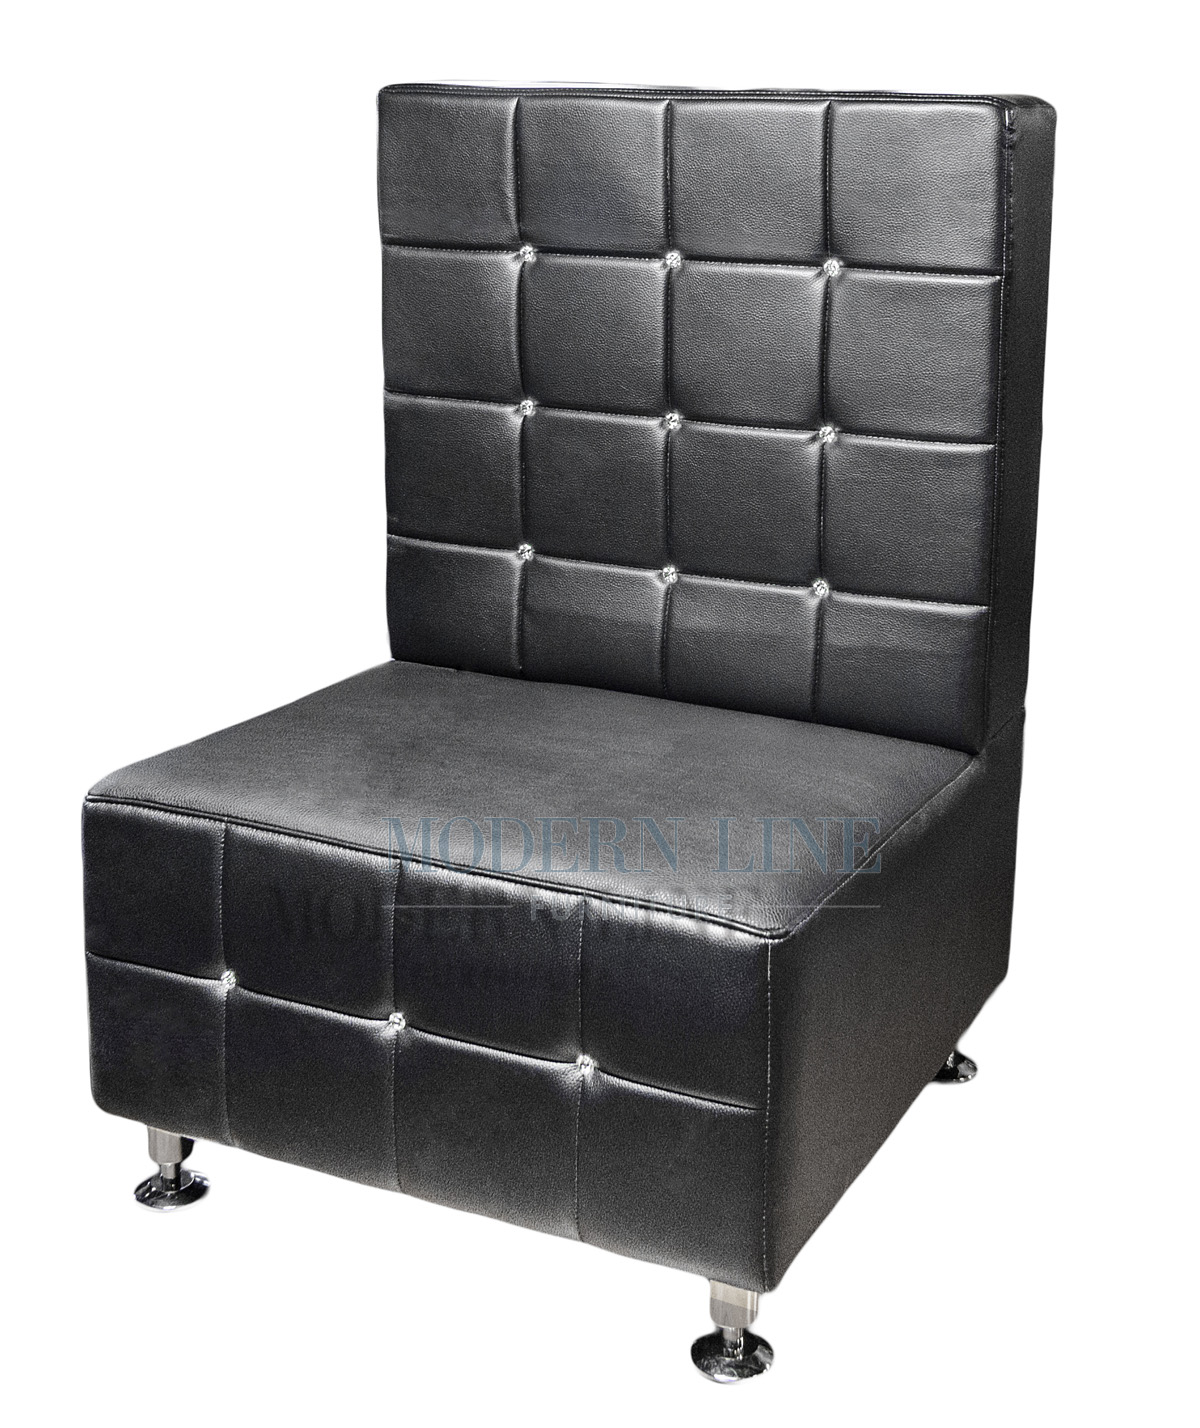 Black leather armless chair -  Furniture Custom Made Furniture Seating Collection Swarovski Crystal Tufted Modern Modular Black Leather Armless Chair Made In Usa